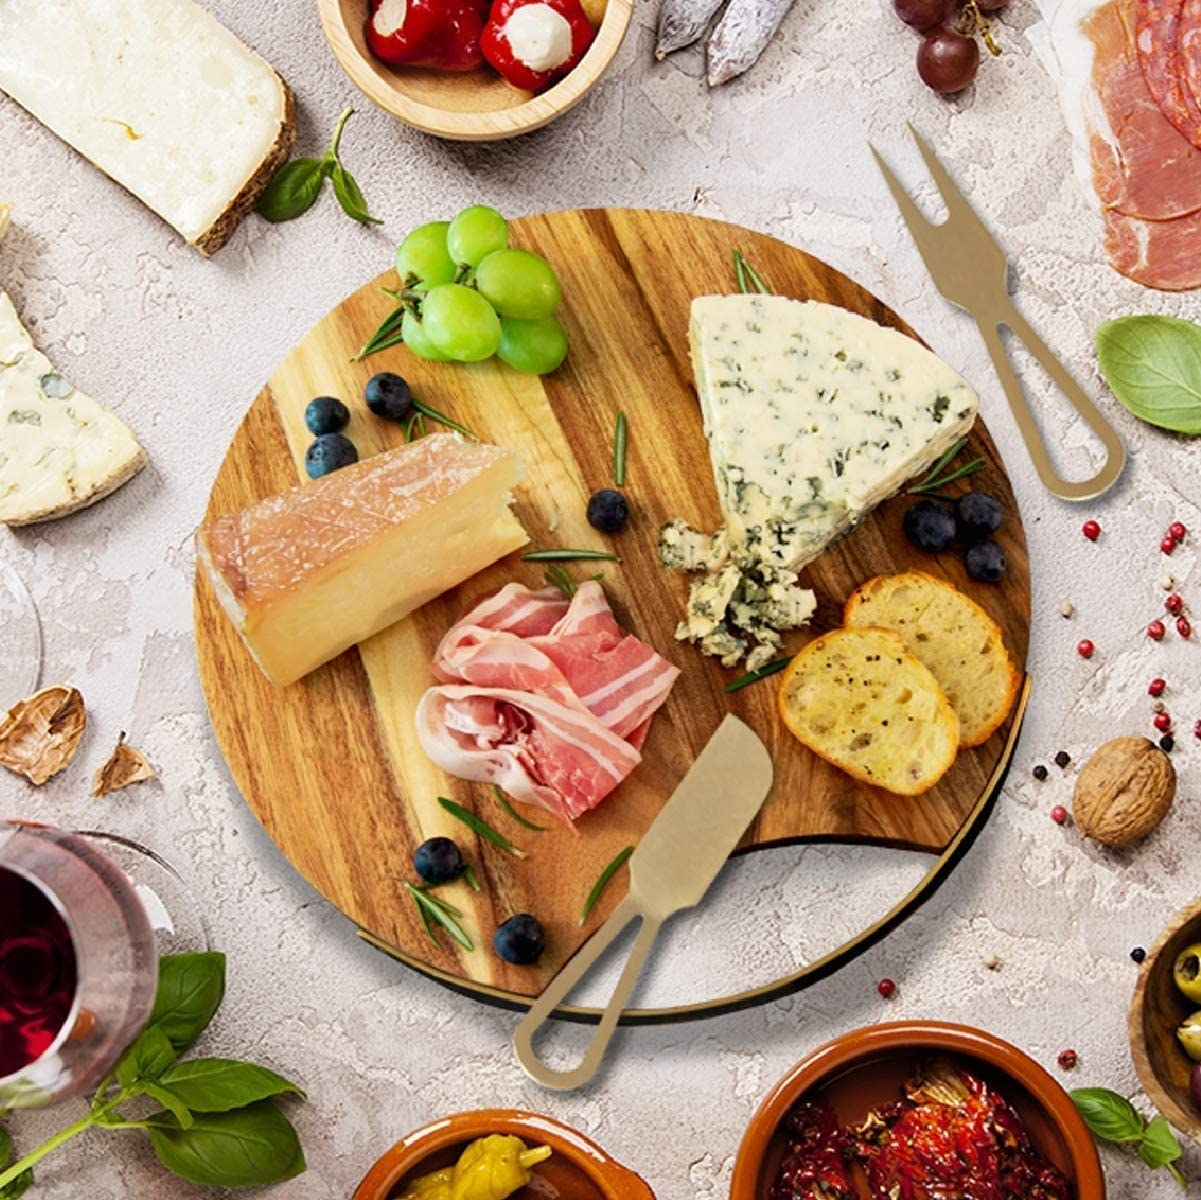 Wood circular cheese board with gold detailing on the side loaded with meats and cheese